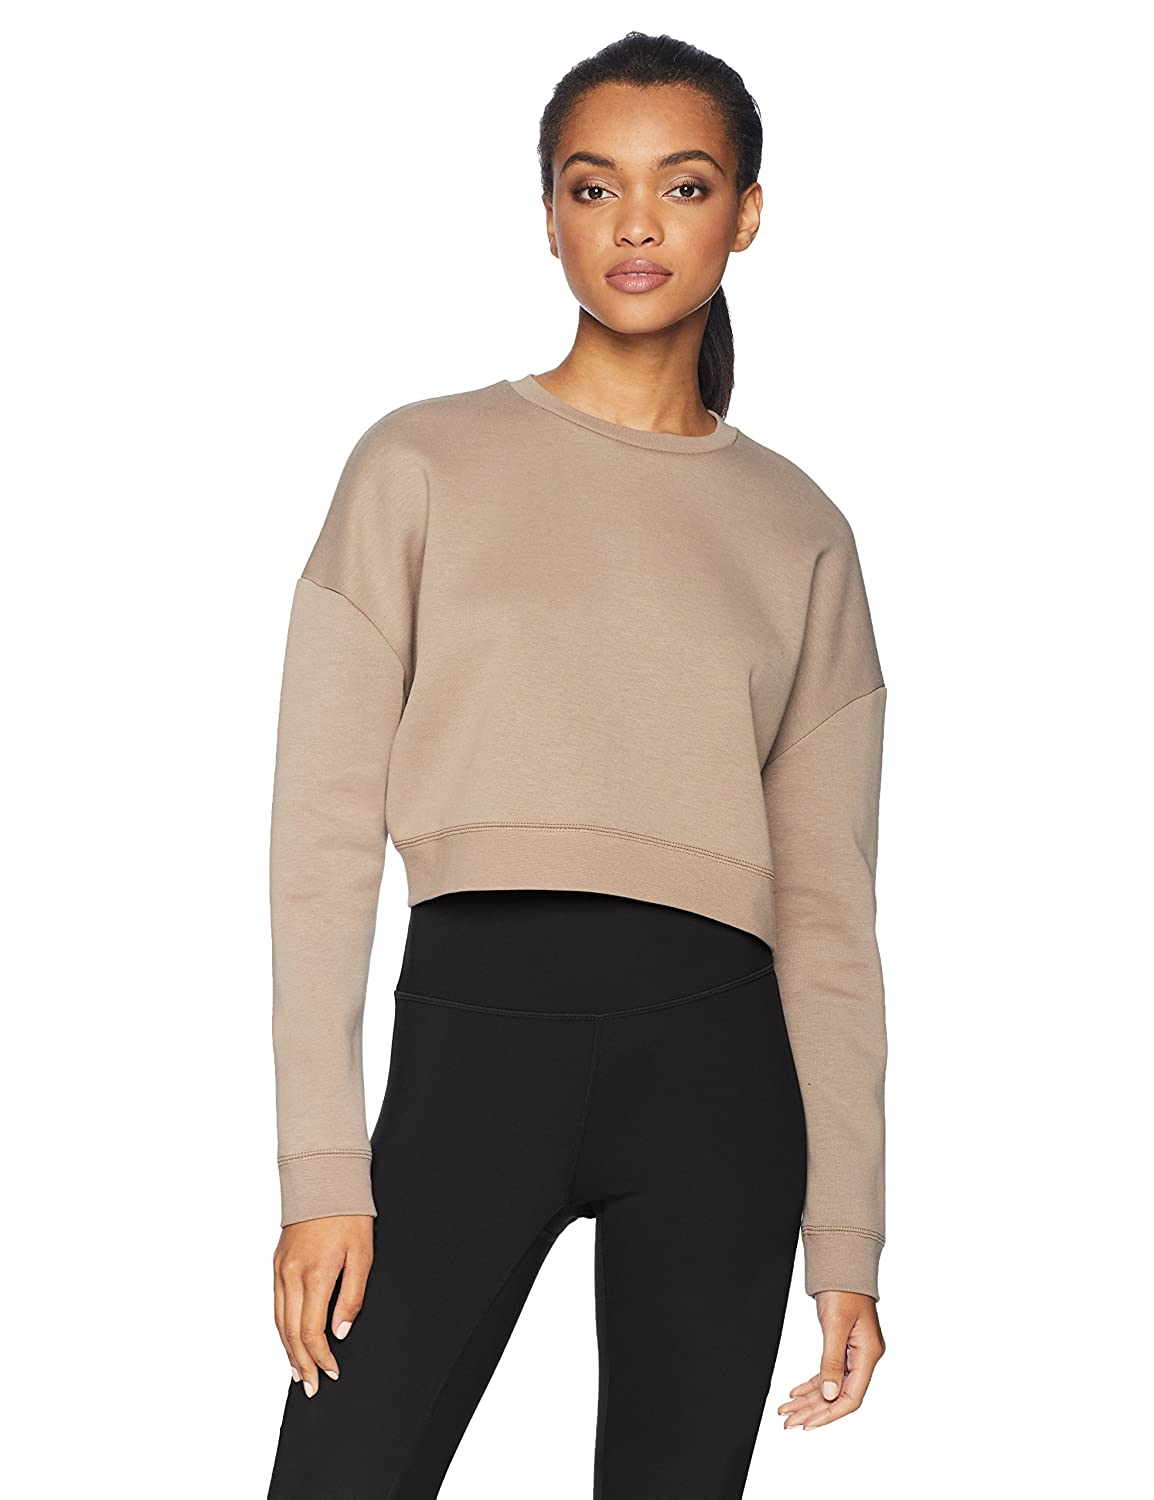 Core 10 Womens Motion Tech Fleece Cropped Sweatshirt SYMW18017